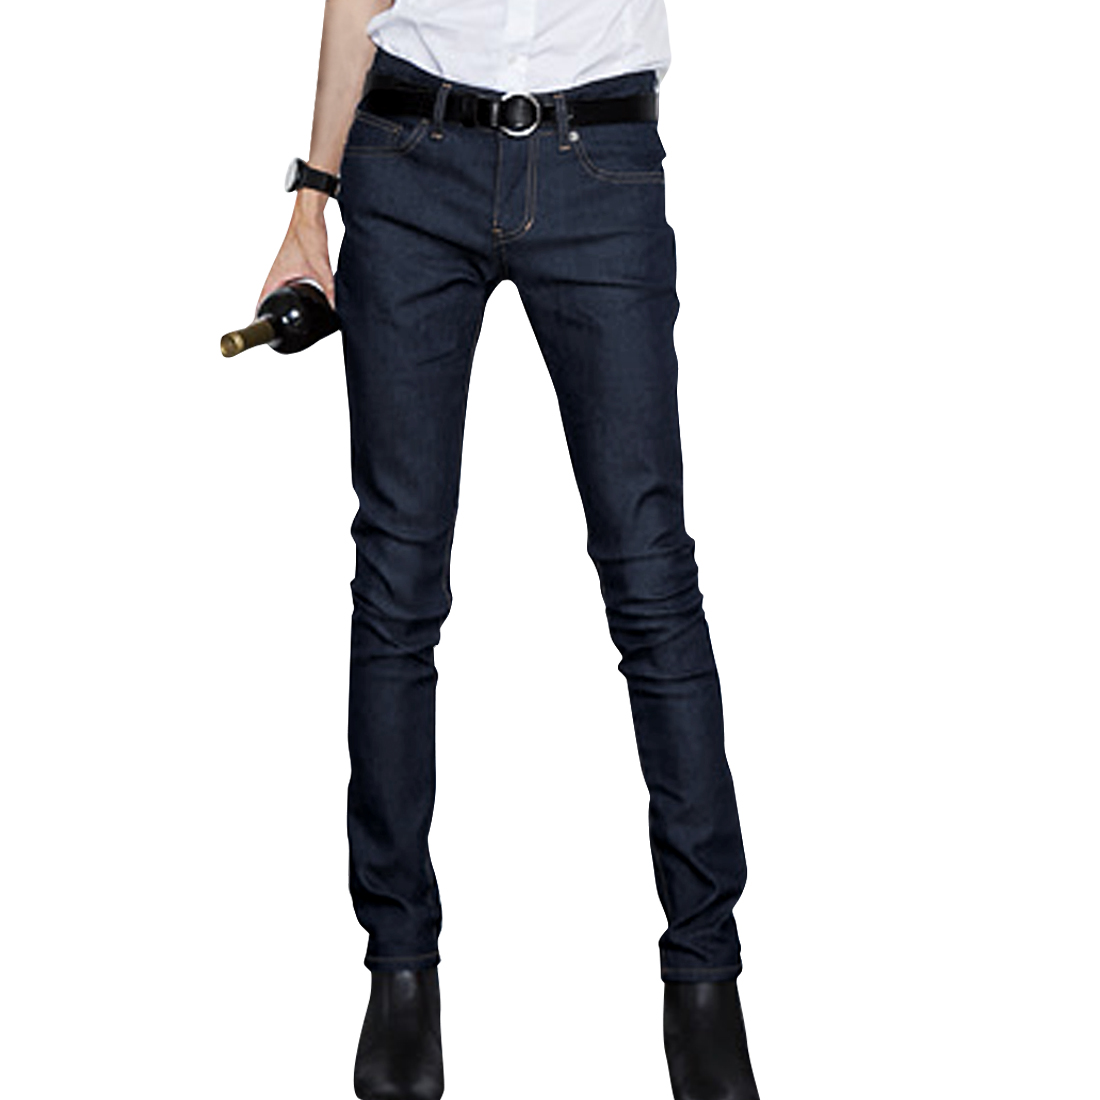 Men Natural Waist Zipper Fly Simple Design Straight Leg Dark Blue Jeans W33